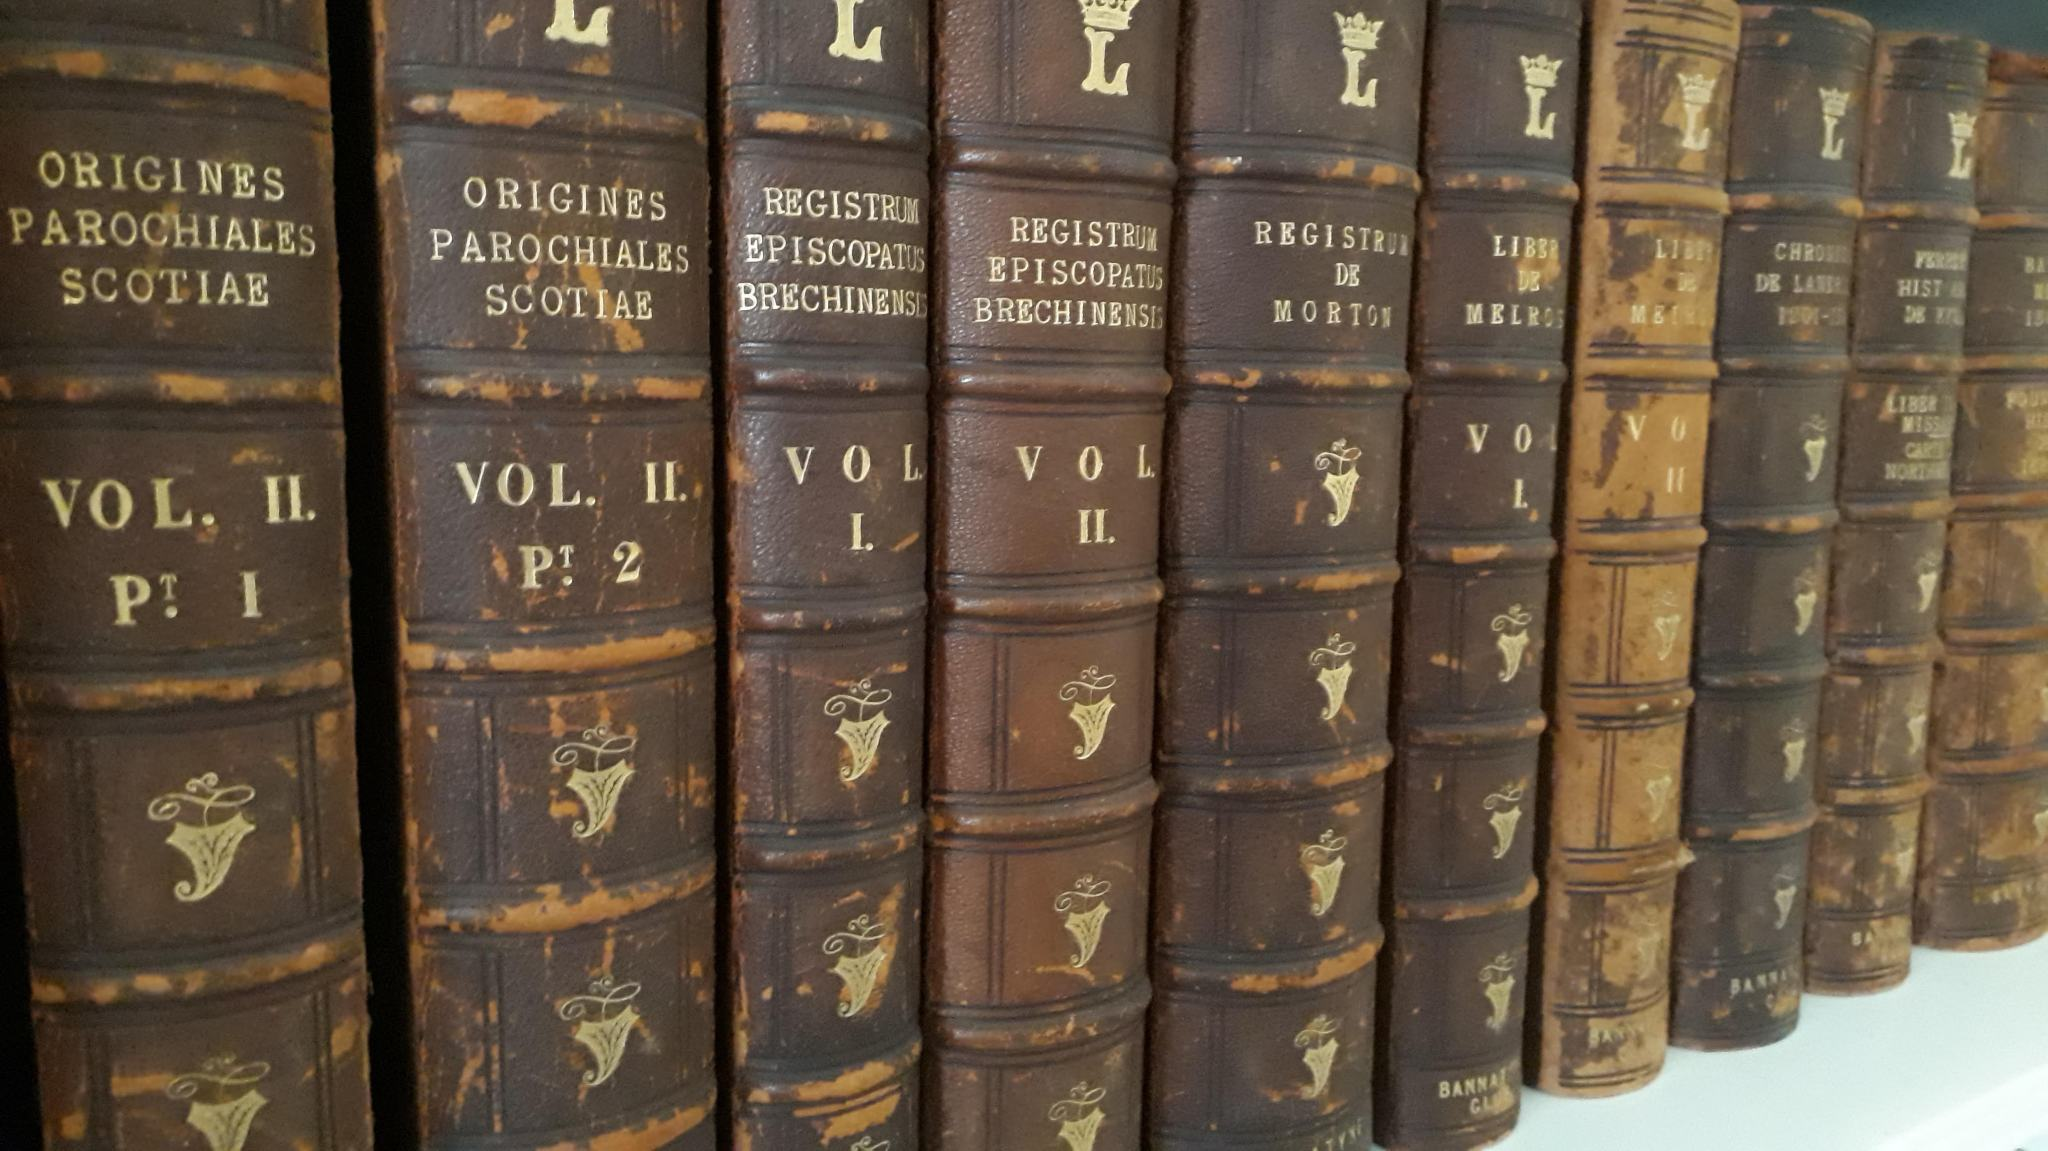 Bannatyne Club publications from the library of the Marquess of Lothian in his personalised bindings.